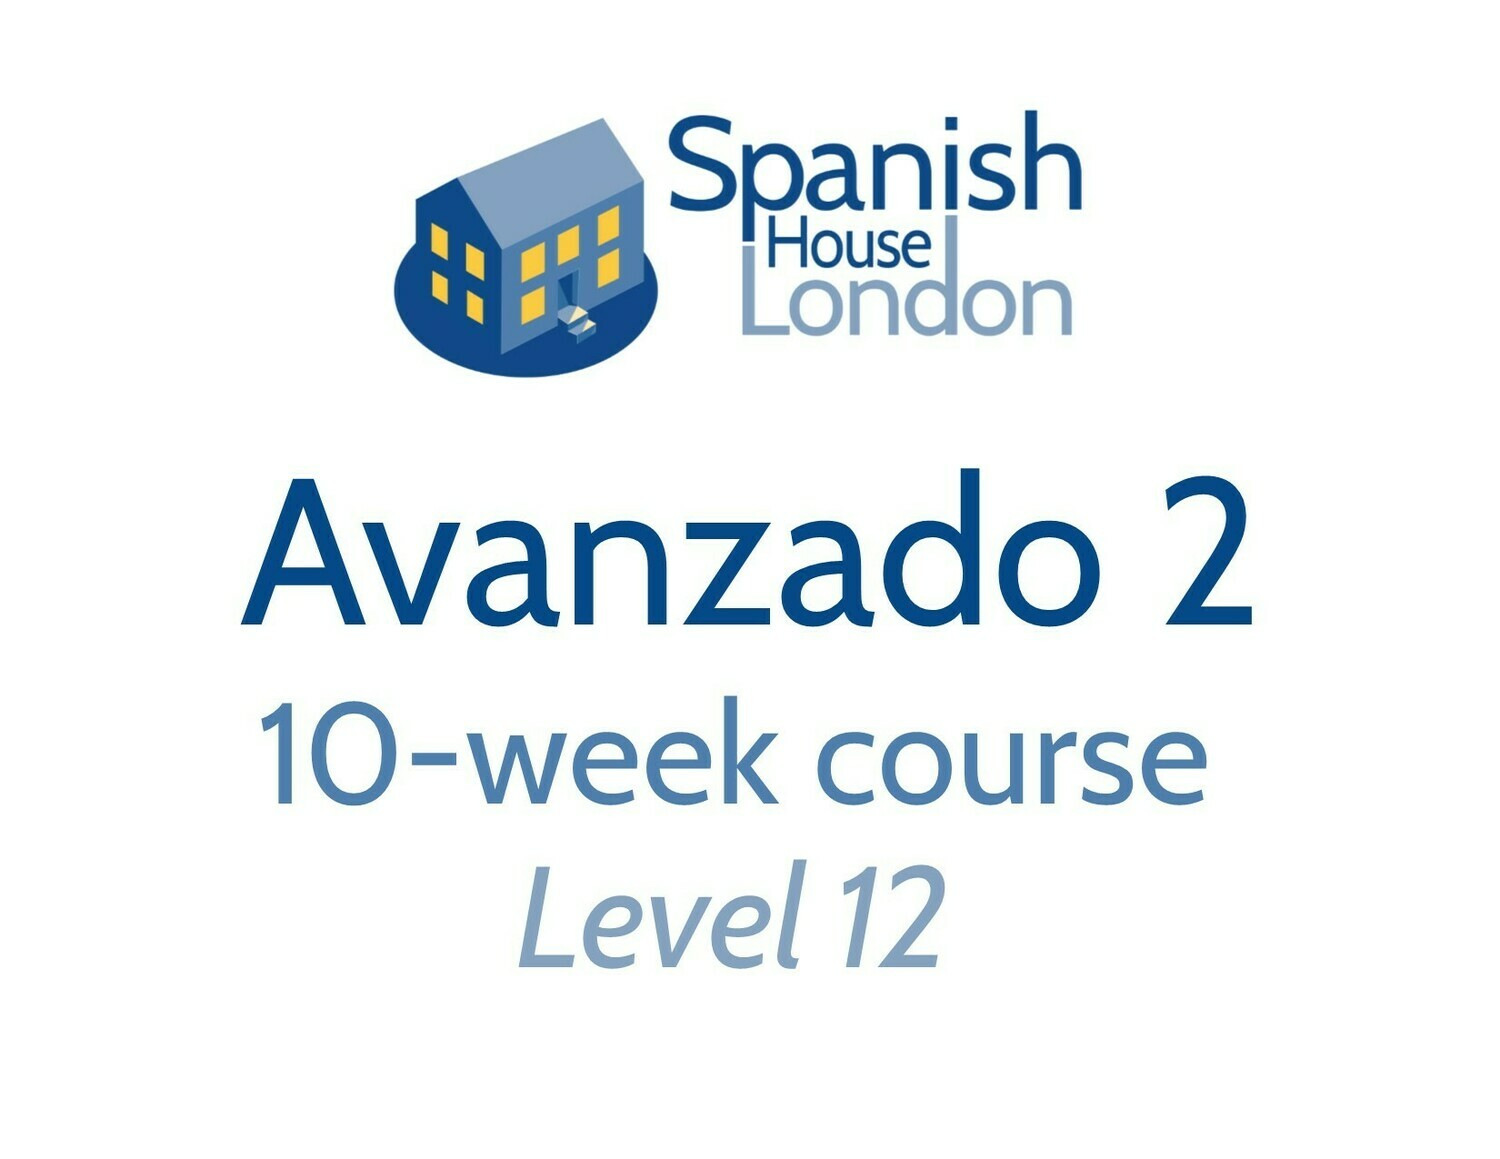 Avanzado 2 Course starting on 9th February at 7.30pm in Clapham North